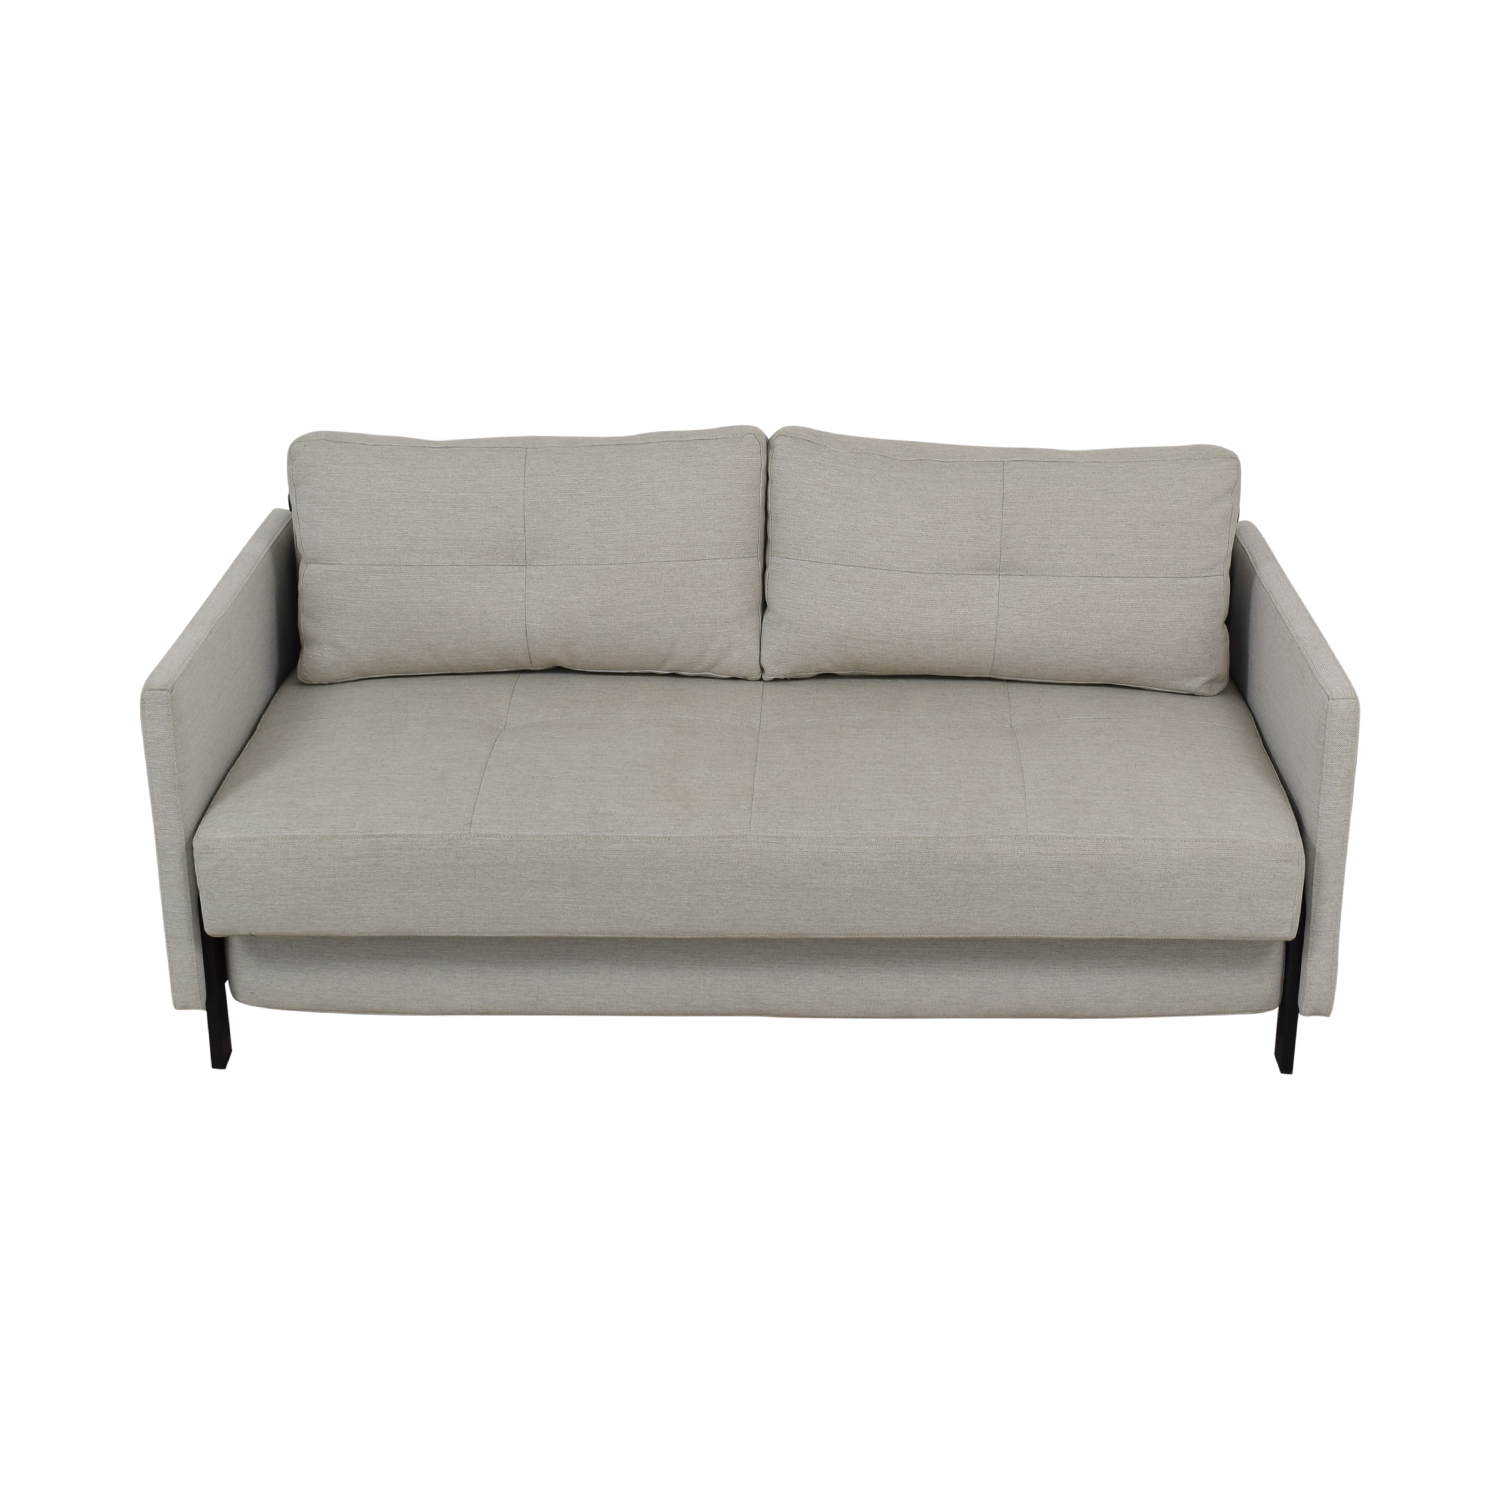 Innovation Living Innovation Living Convertible Sofa coupon